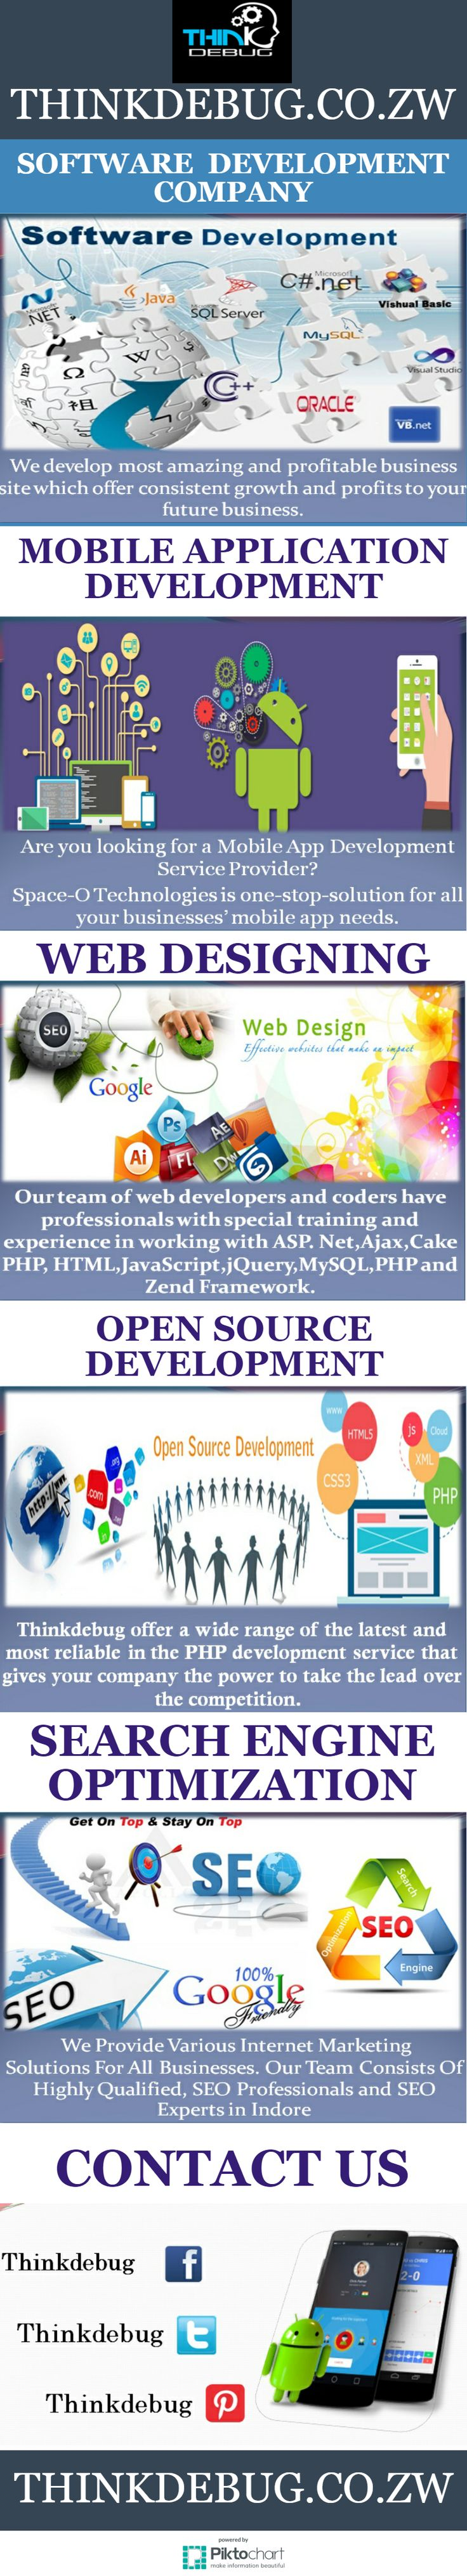 Thinkdebug, a pioneered web development company Zimbabwe offers end-to-end web development services as we strive to provide excellent service at every phase. Our web developers and coders work strictly in accordance to the enterprise level coding standards to ensure that you get the best. Our team of web developers and coders have professionals with special training and experience in working with ASP. Net, Ajax, Cake PHP, HTML, JavaScript, jQuery, MySQL, PHP and Zend Framework.  For More…